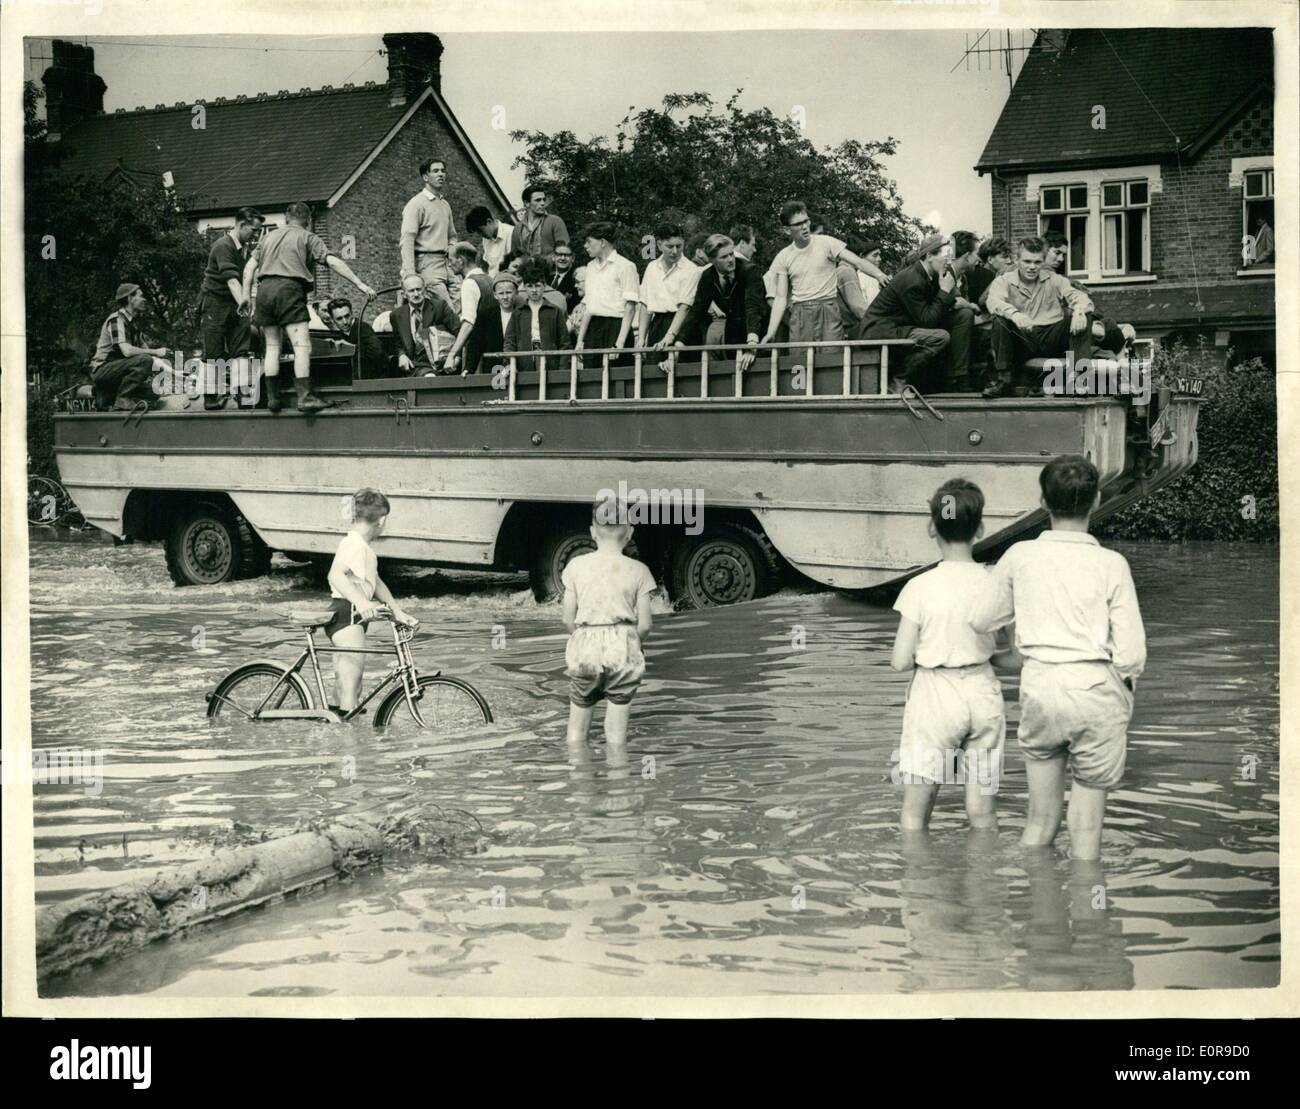 Sep. 09, 1958 - Flood Scenes after last night's storm. Much damage was caused last night in what was described as ''one of the most spectacular storms of the century'', which swept the south of England. Many housed were flooded and buildings damaged. Photo shows A.D.U.K.W. which was brought into action convey people about in flooded wickford, Essex, today. - Stock Image